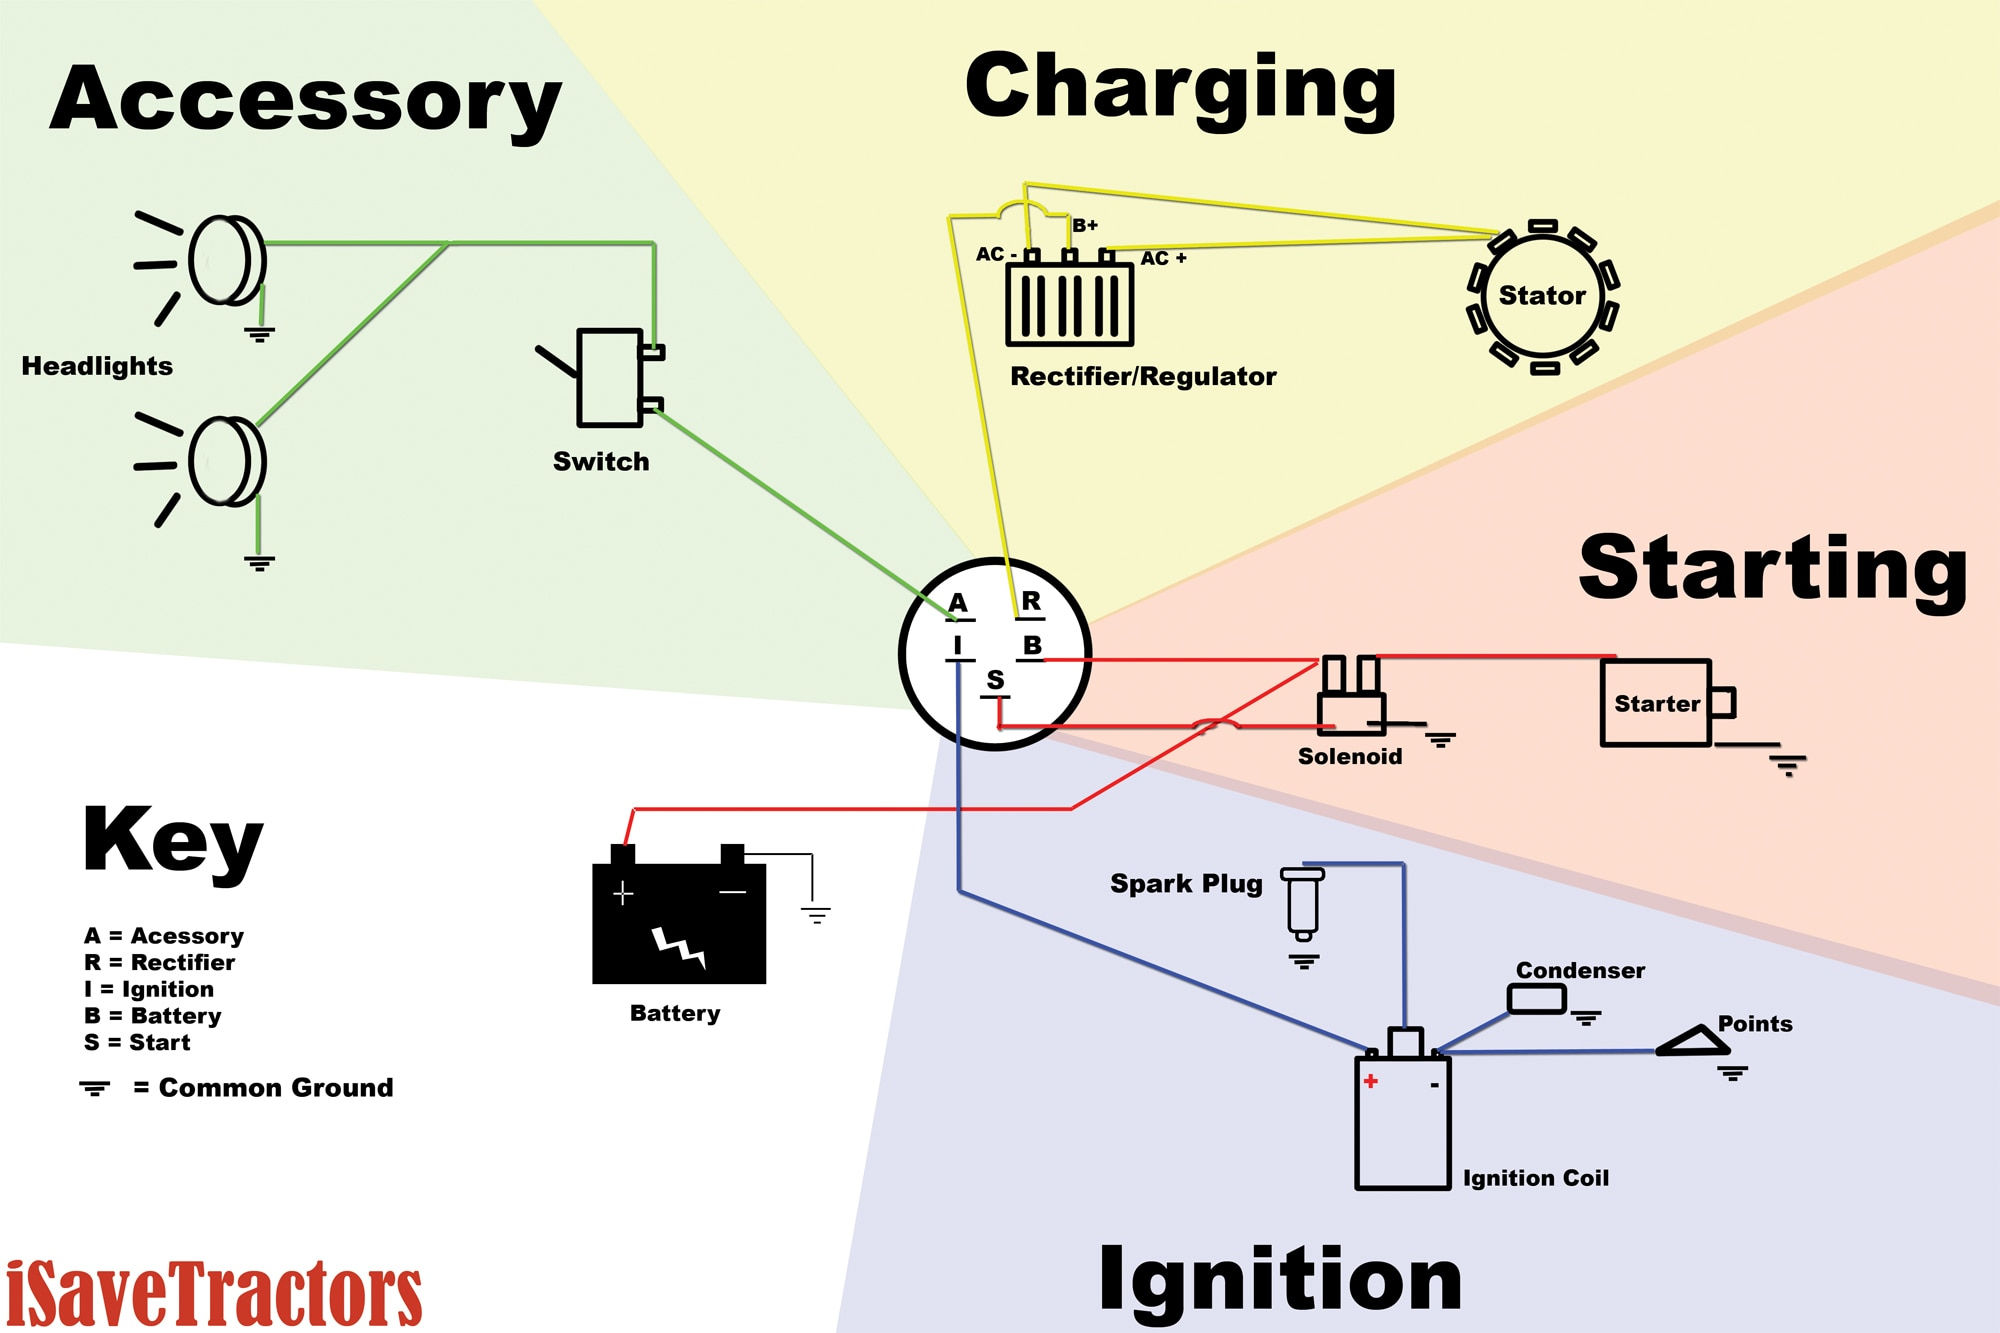 Basic Wiring Diagram For All Garden Tractors Using A Stator And - Briggs And Stratton Voltage Regulator Wiring Diagram